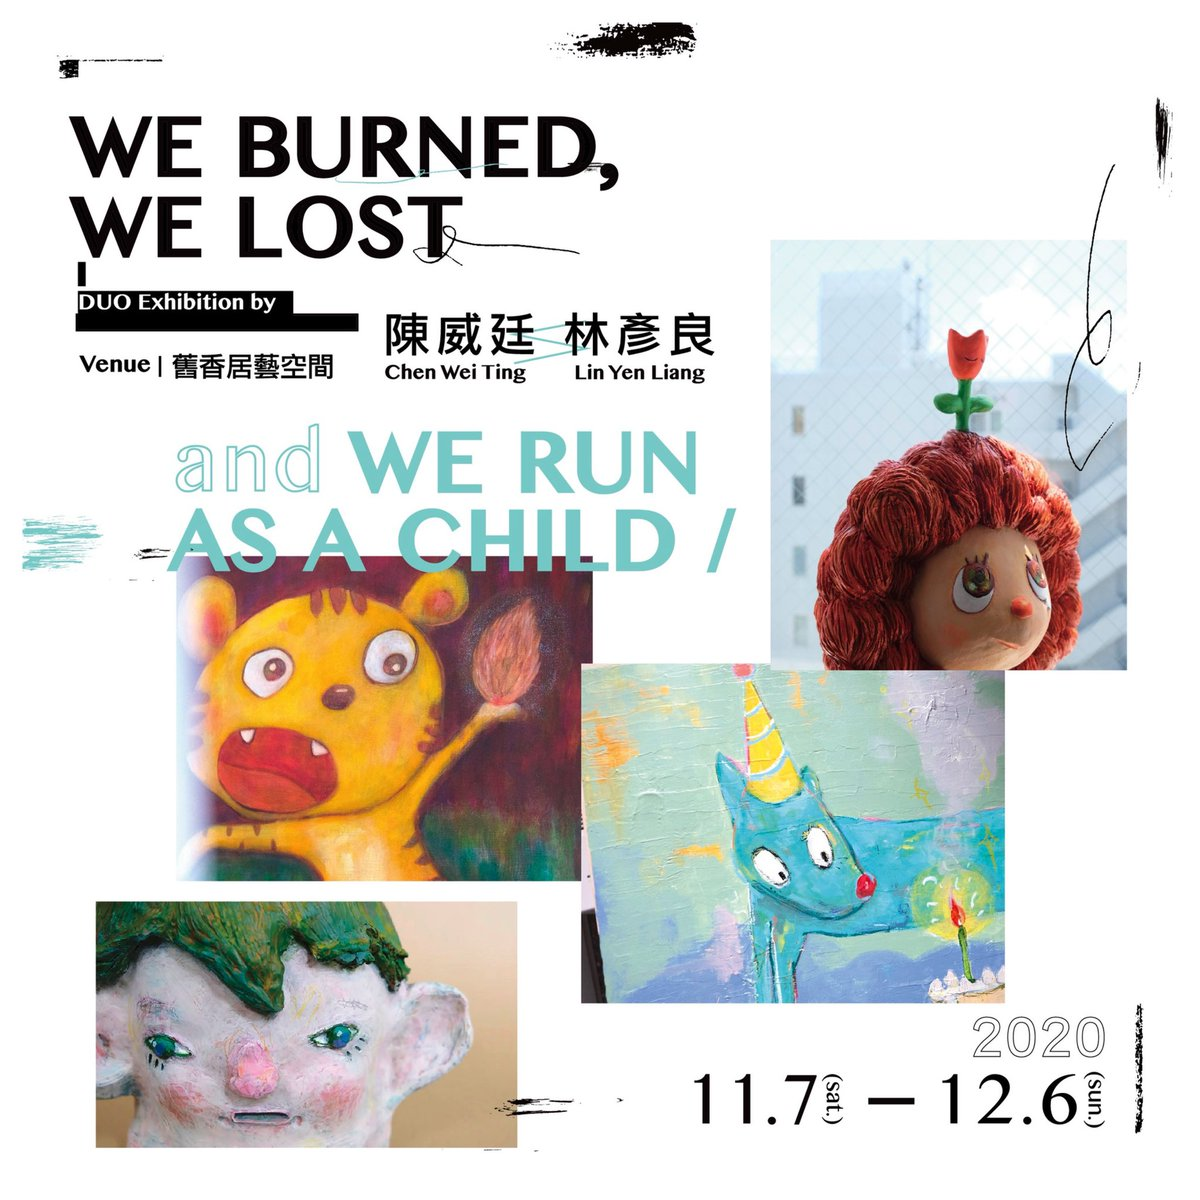 「We burn, we lose and we run as a child」 DUO Exhibition  by Chen Wei Ting and Lin Yen Liang   ————————————  Date  11/7 Sat. — 12/6 Sun. Venue|舊香居藝空間 @jxjbooks  Time |14:00-20:00  ———— #陳威廷 #sculpture  #chenweiting #artist #art #painting #アート #芸術 #藝術 #當代 https://t.co/GLaHWvrsI4